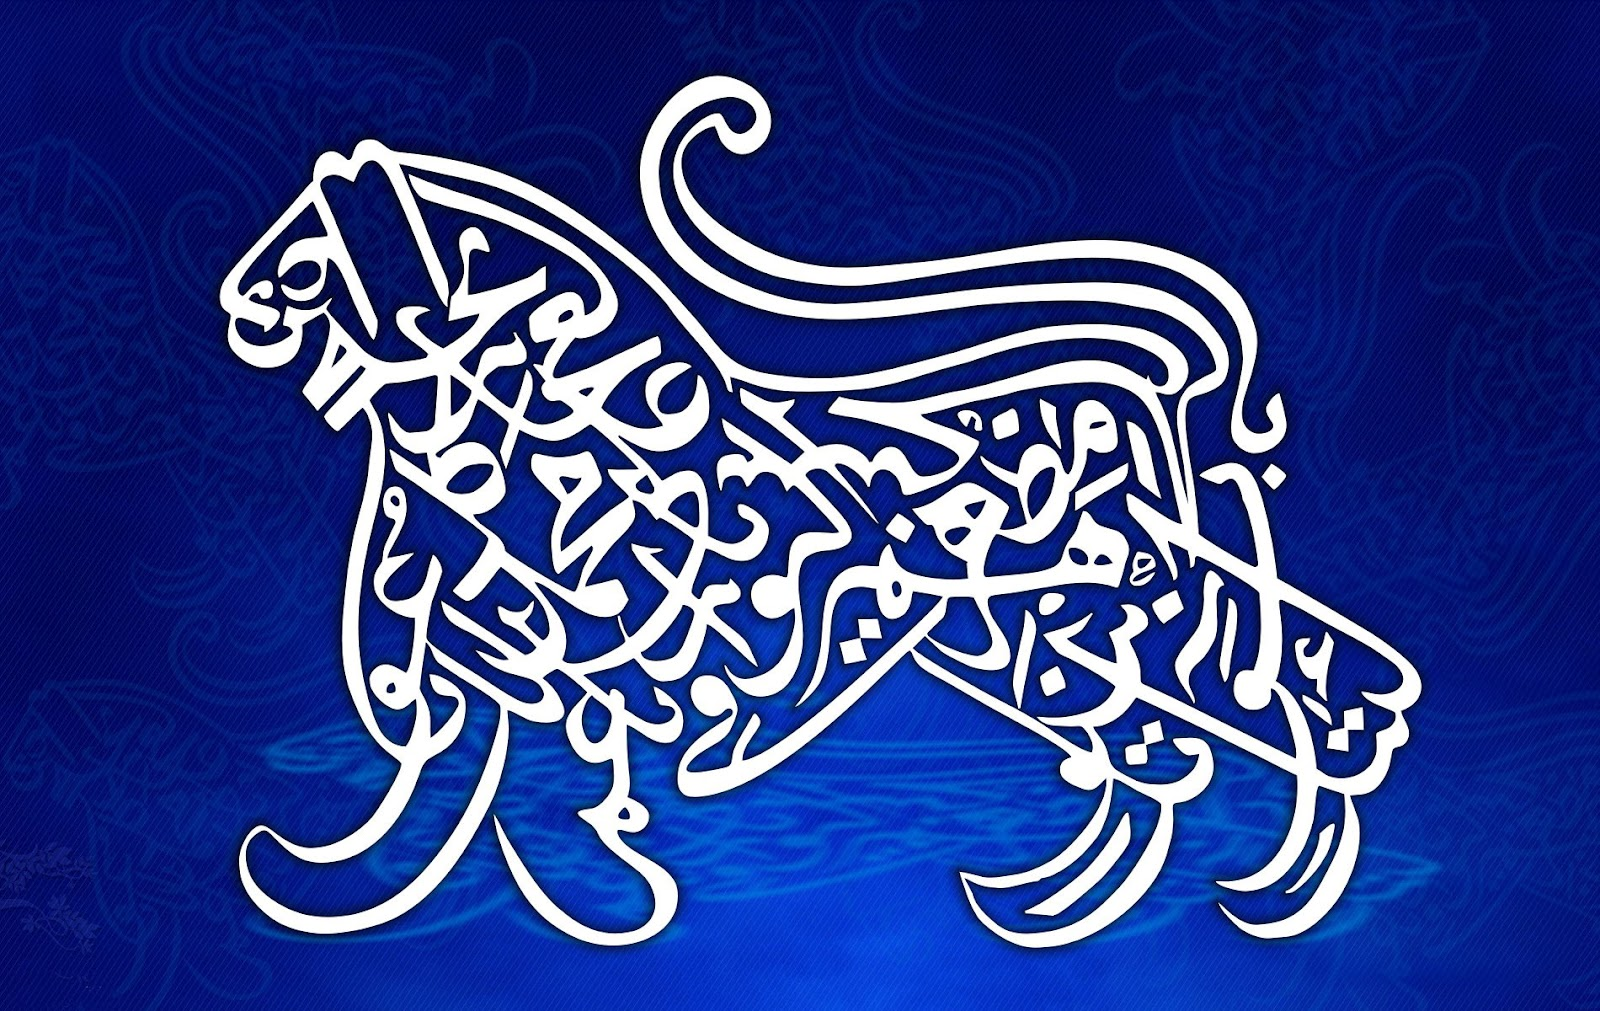 The golden age of islam achievements islamic art Why is calligraphy important to islamic art